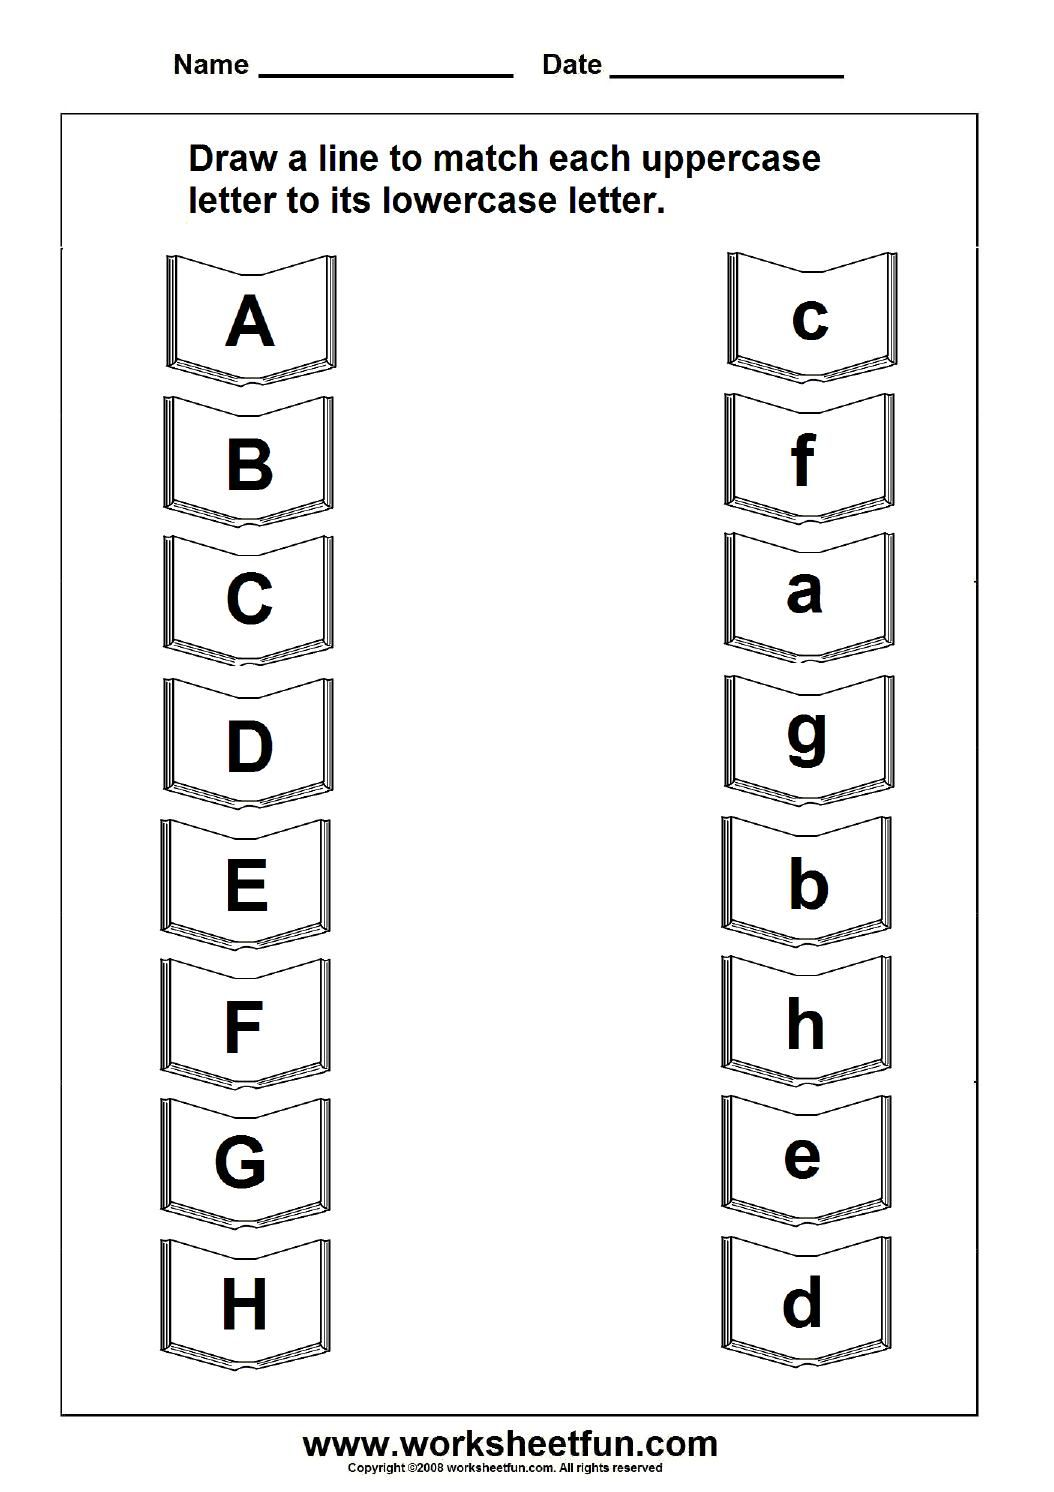 18 English Small Letters Worksheets In 2020 Alphabet Writing Practice Lower Case Letters Uppercase And Lowercase Letters [ 1492 x 1054 Pixel ]